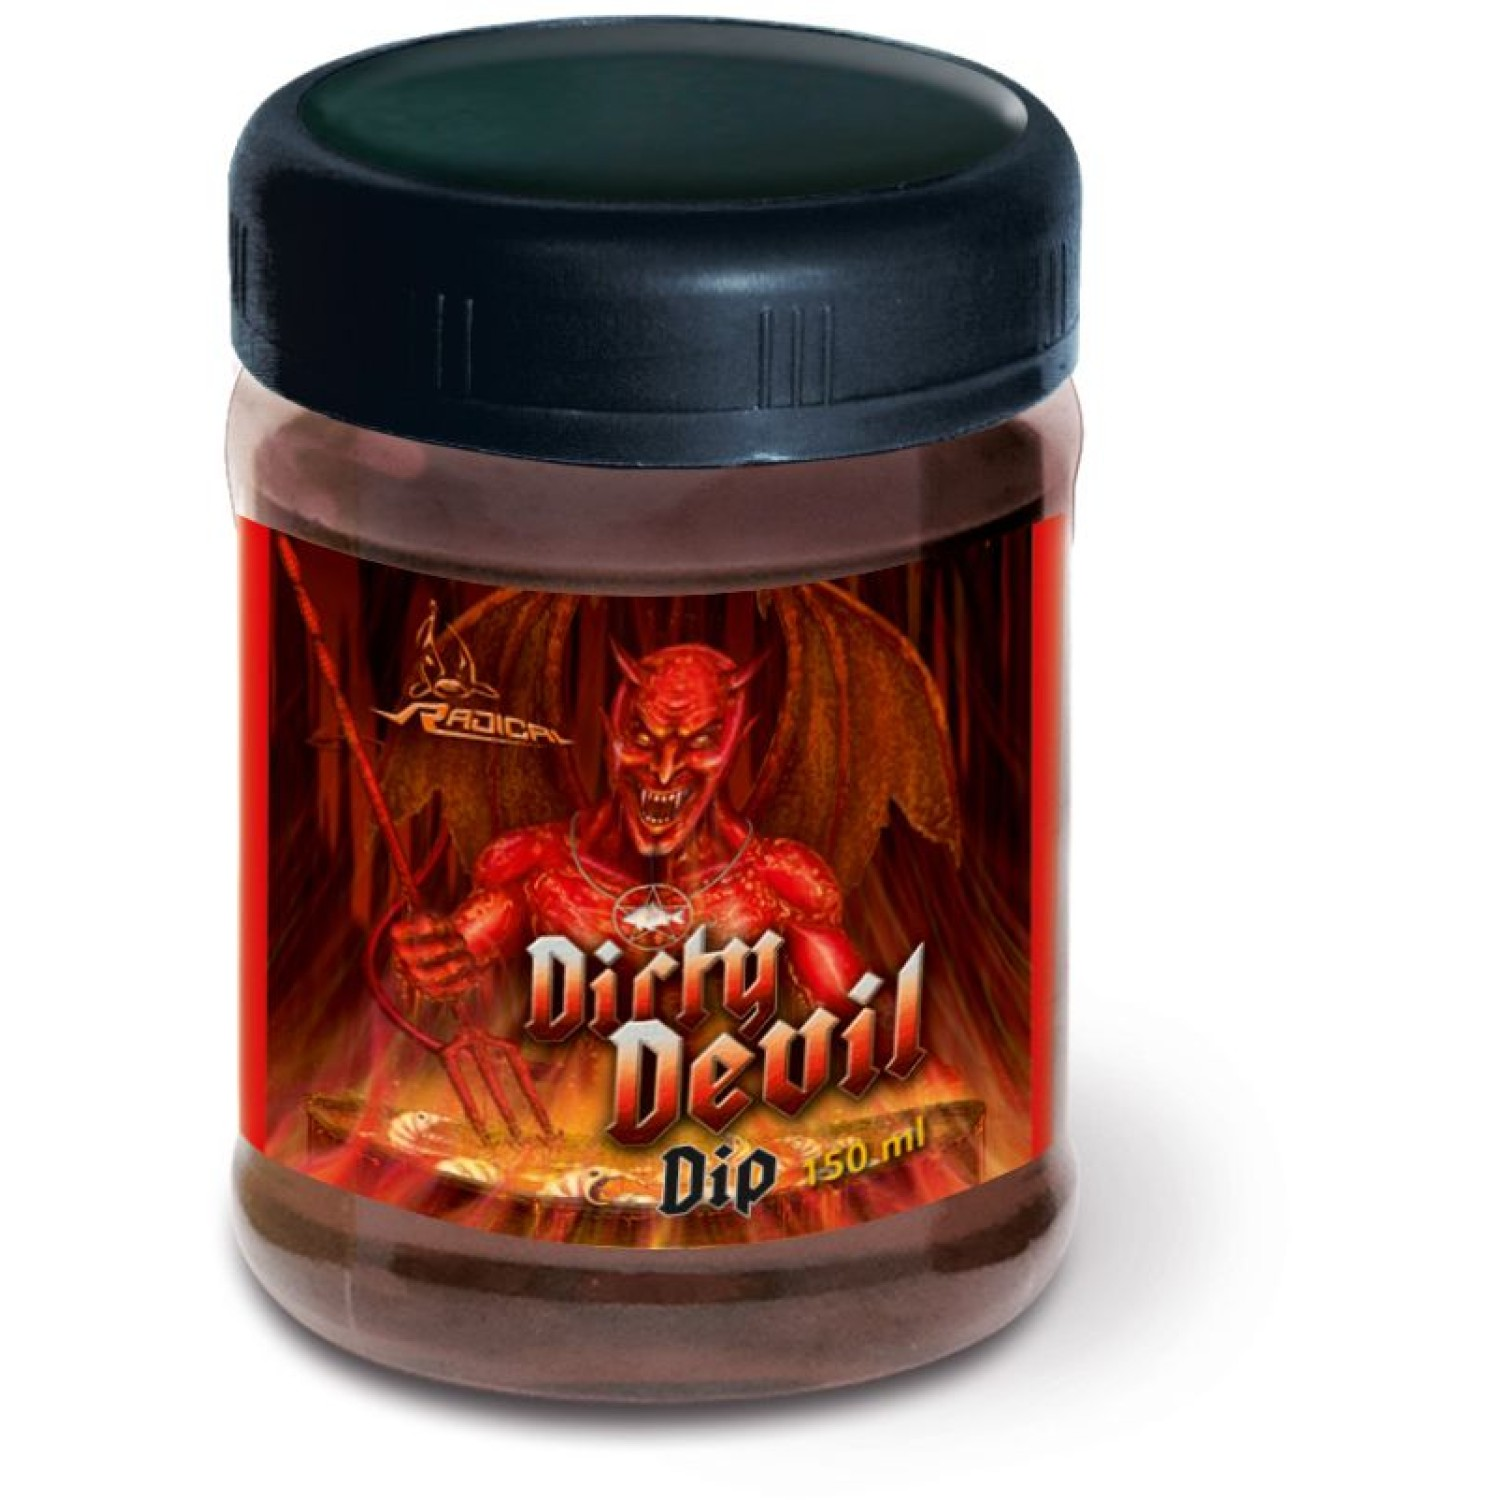 QUANTUM Dirty Devil Dip 150ml